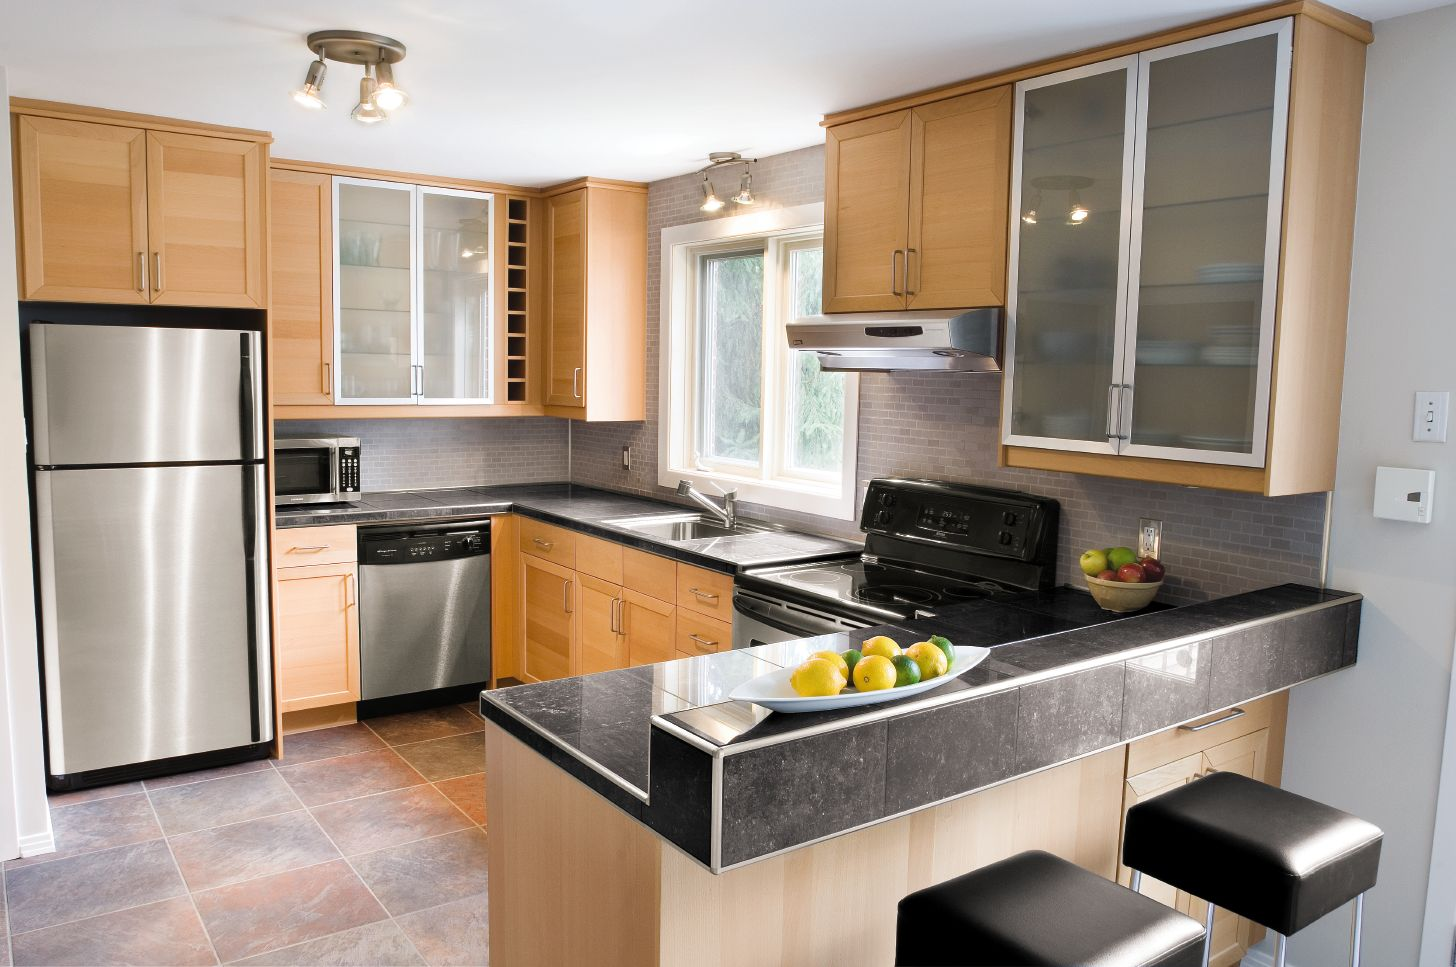 Contemporary kitchen schluter subway tiles on the backsplash porcelain tiles with granite look and brushed aluminum profiles match the appliances creating this contemporary kitchen doublecrazyfo Images